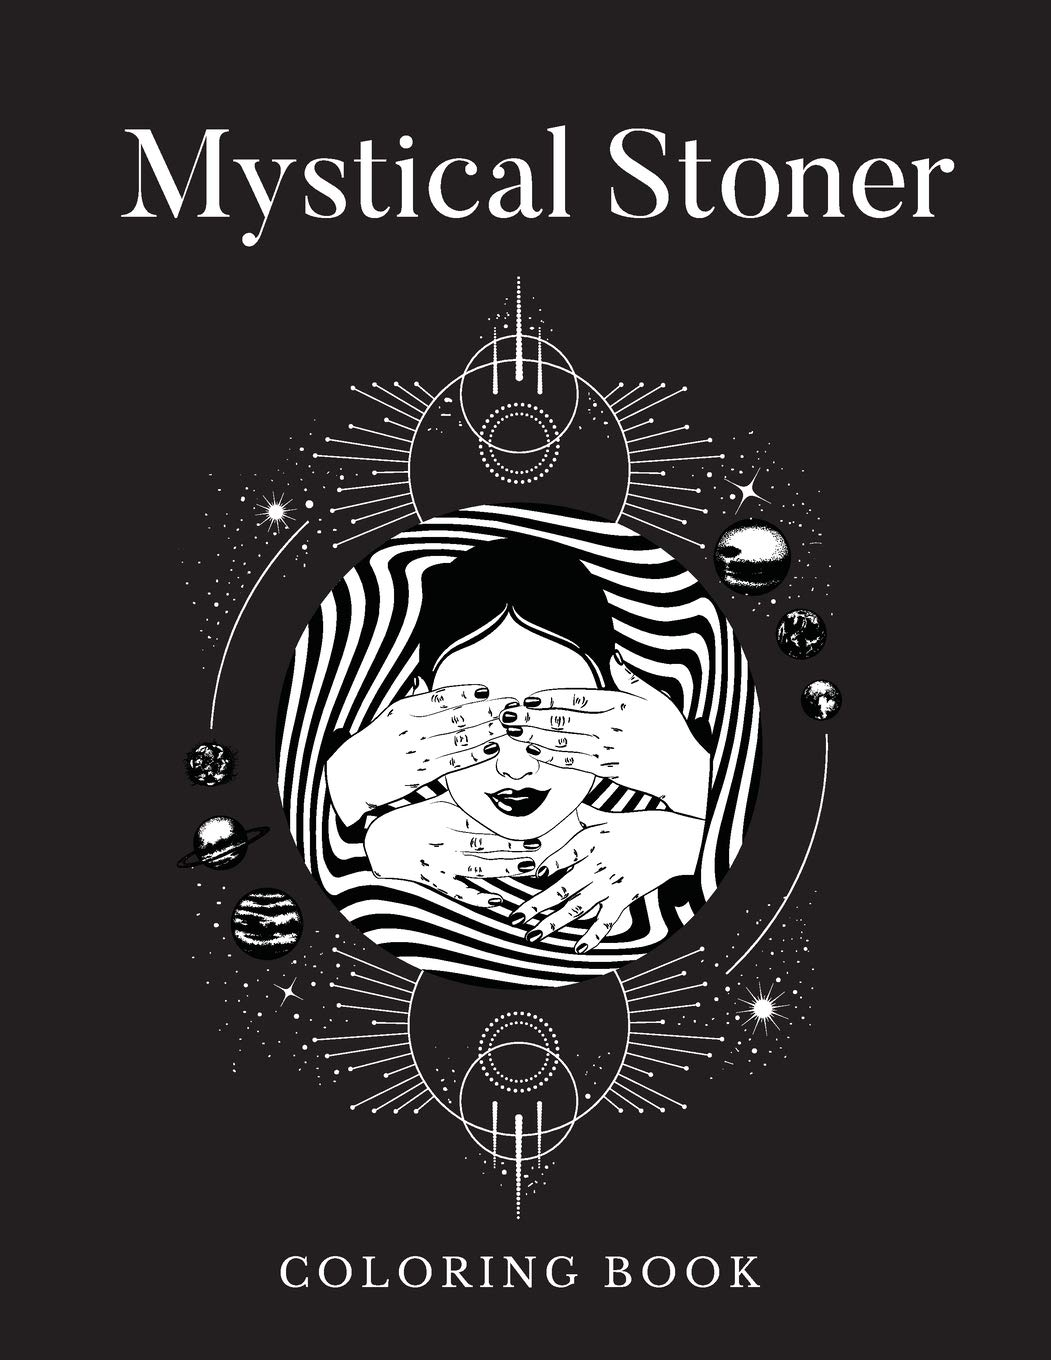 Mystical Stoner Coloring Book Creative Psychedelic Drawing For Adults Teens Trippy Lsd Mushrooms High Rabbit Black 9798671836349 Amazon Com Books